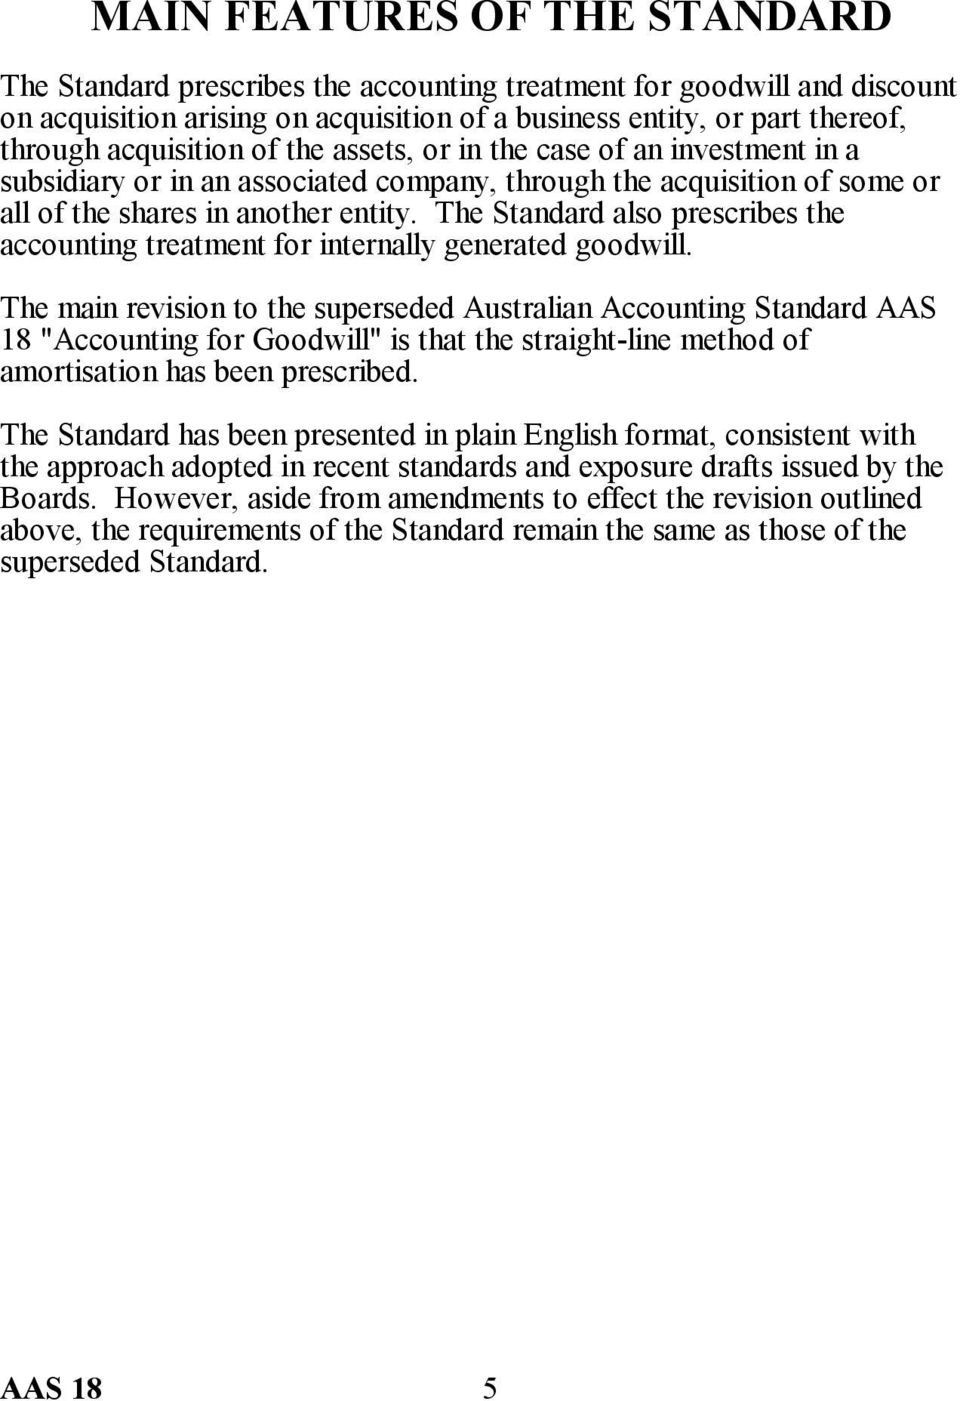 The Standard also prescribes the accounting treatment for internally generated goodwill.